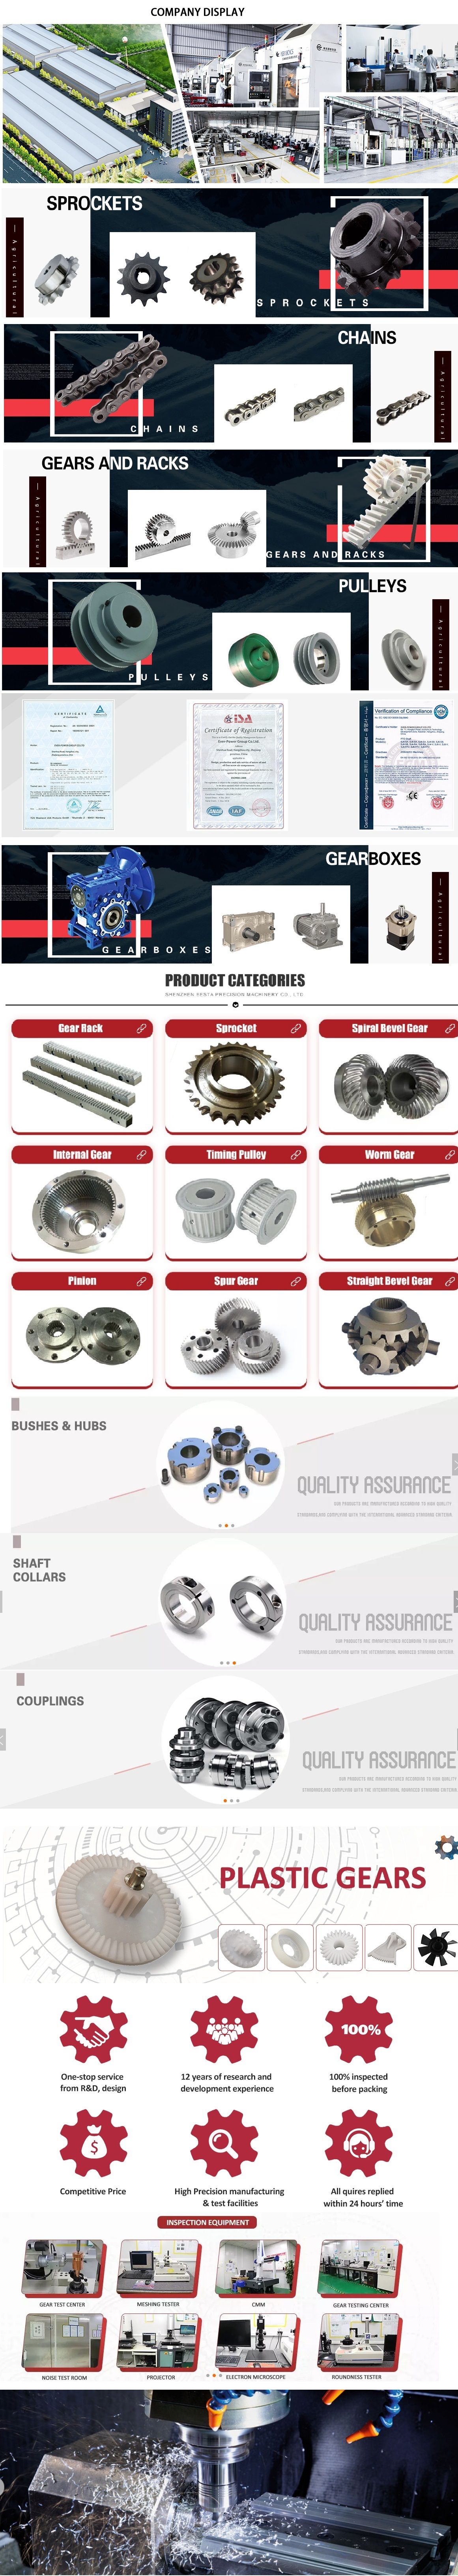 in Port Elizabeth South Africa  sales   price   shop   near me   near me shop   factory   supplier Wpdx060 Gearbox Transmission Worm Gear Speed Reducer manufacturer   best   Cost   Custom   Cheap   wholesaler